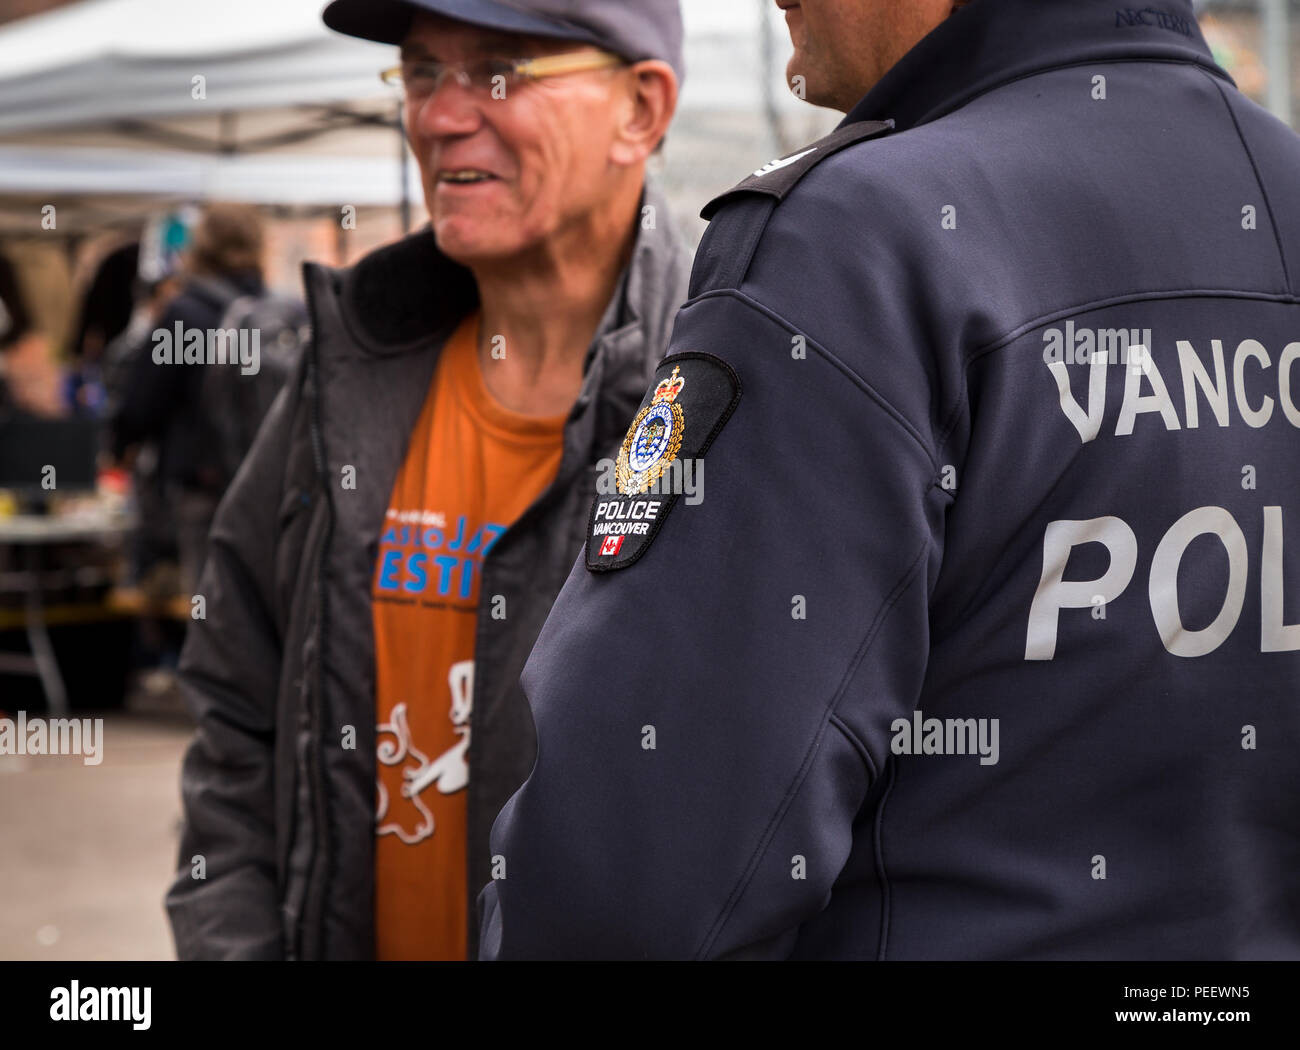 VANCOUVER, BC, CANADA - MAY 11, 2016: Vancouver police officer conversing with a member of the public. - Stock Image